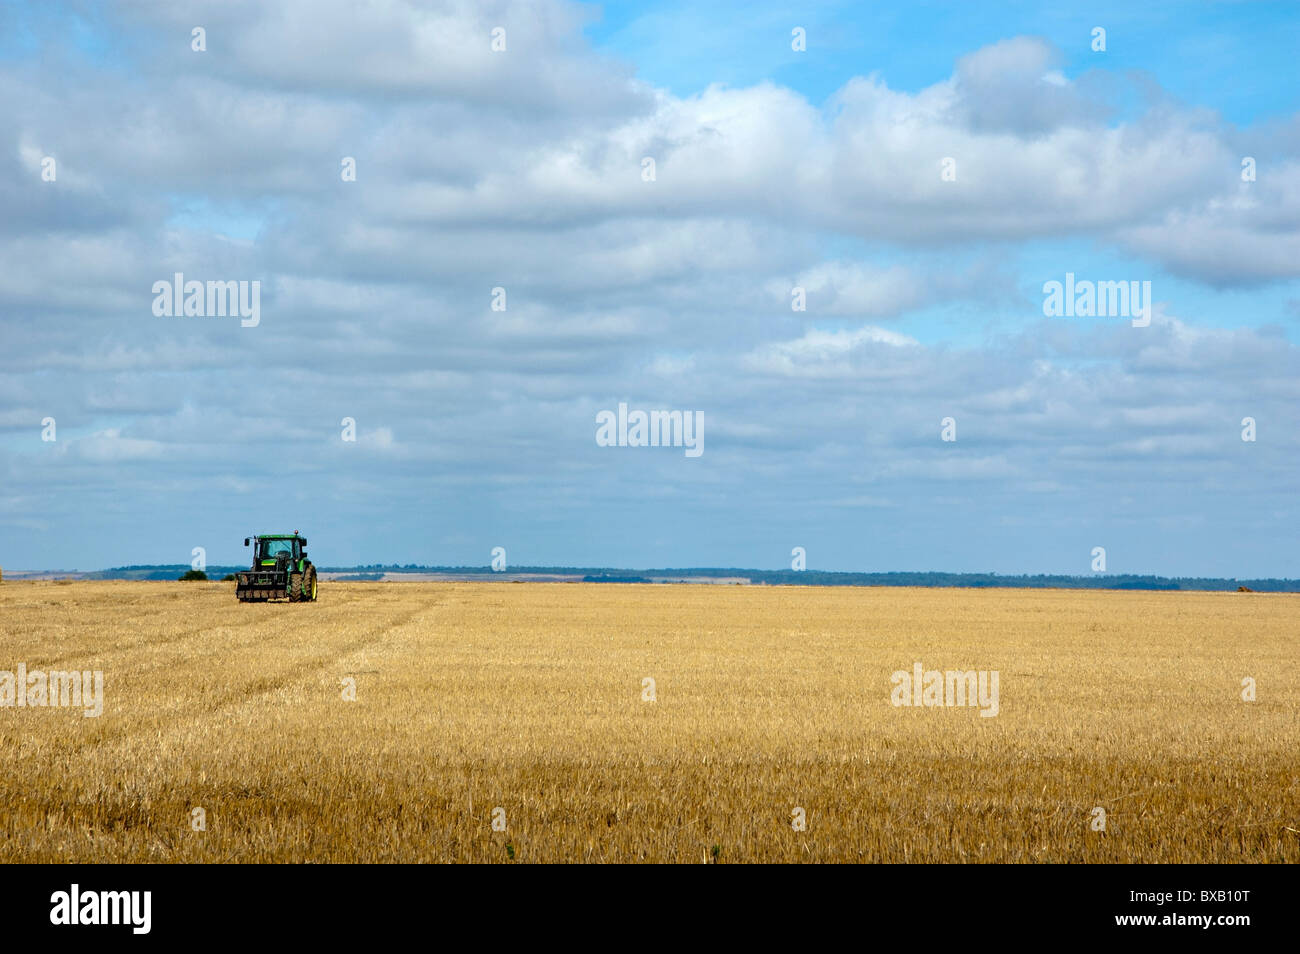 Tractor parked in harvested corn field, Normandy, France. - Stock Image